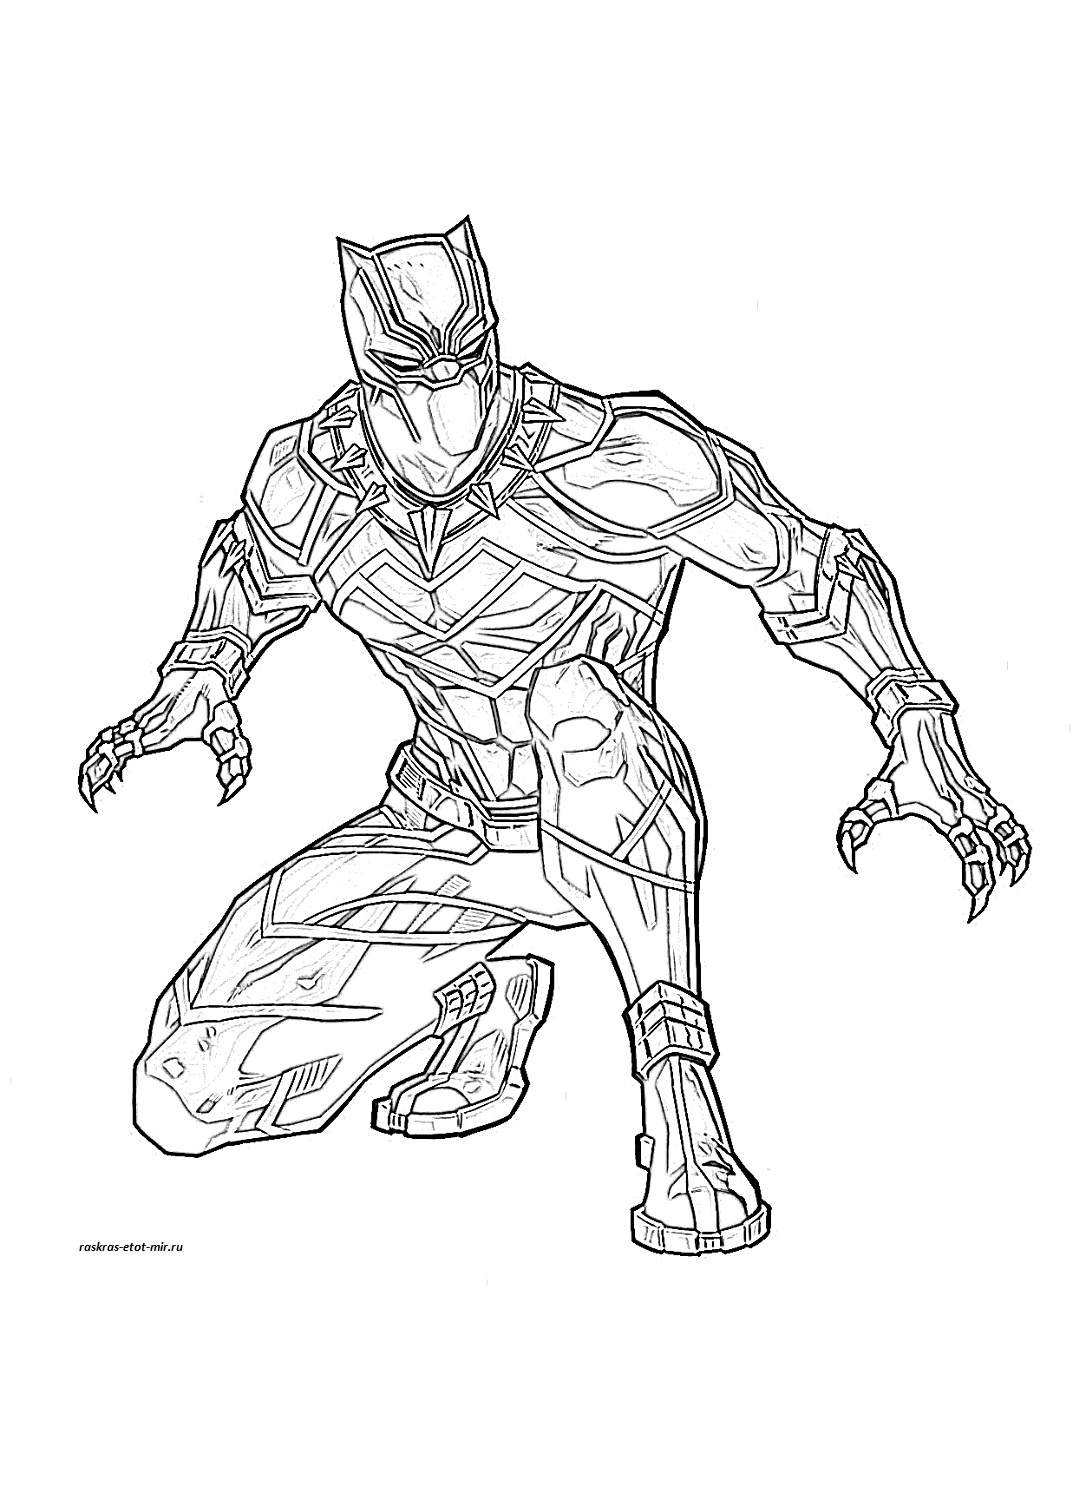 Black Panther Coloring pages 🖌 to print and color